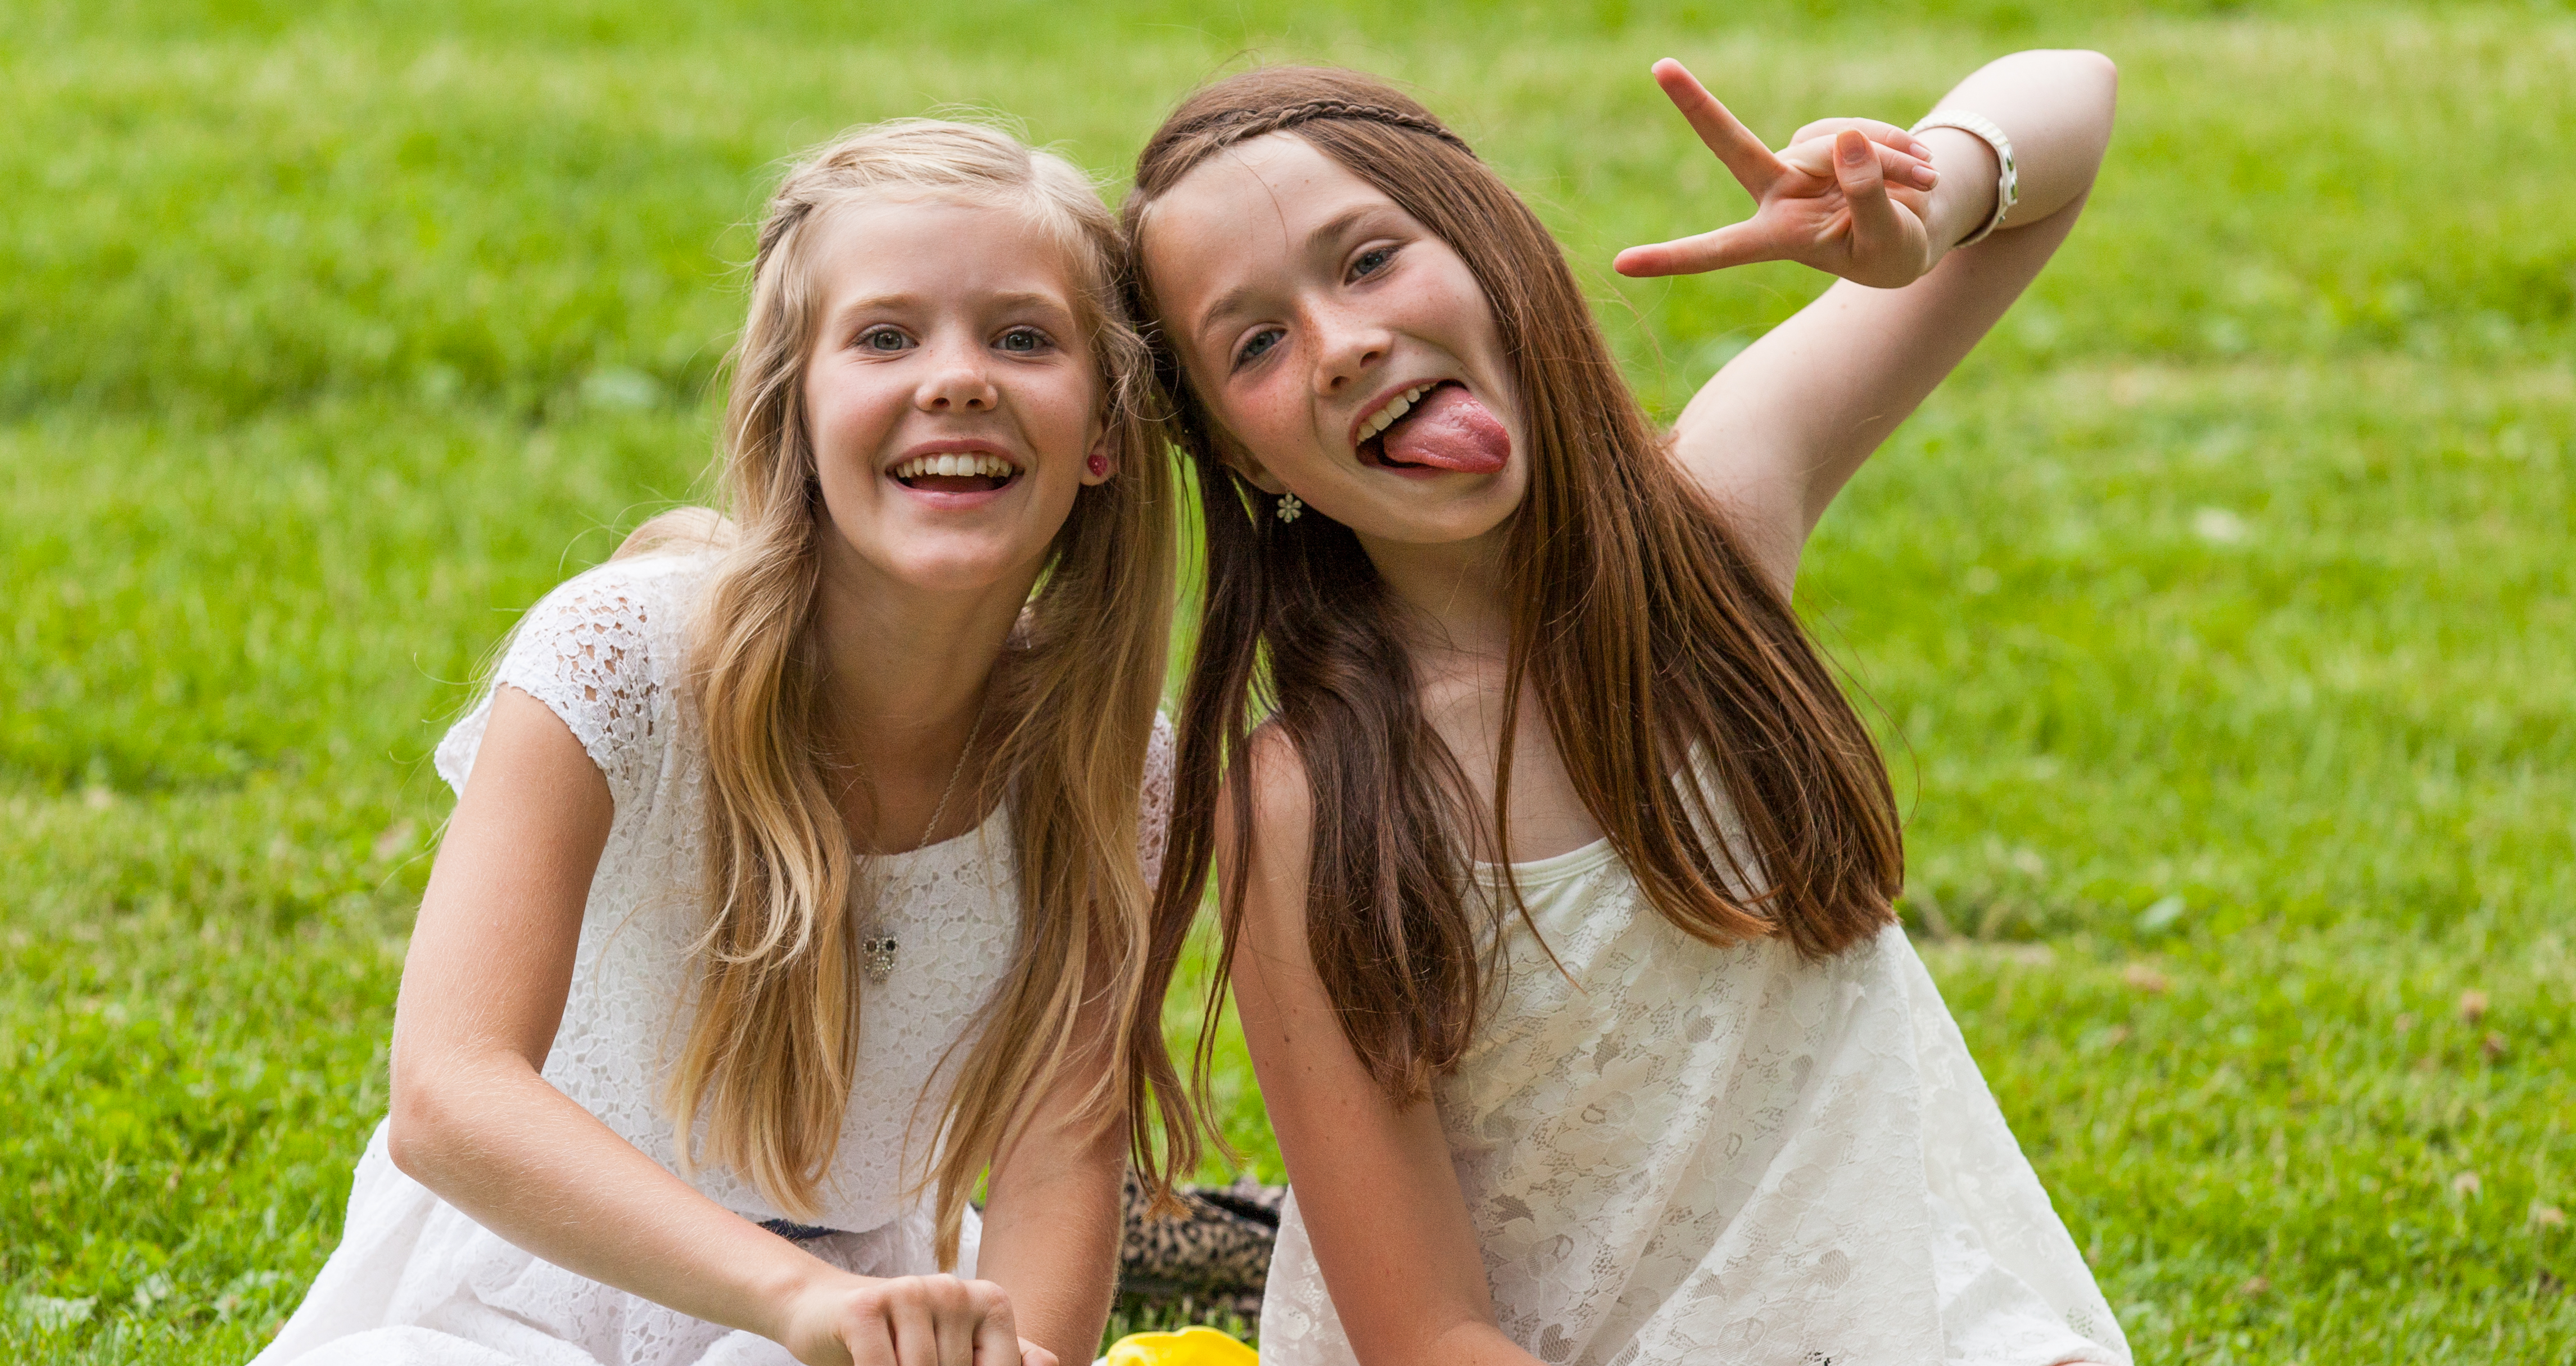 two cute young girls in Sigtuna, Sweden, June 2014, picture 19